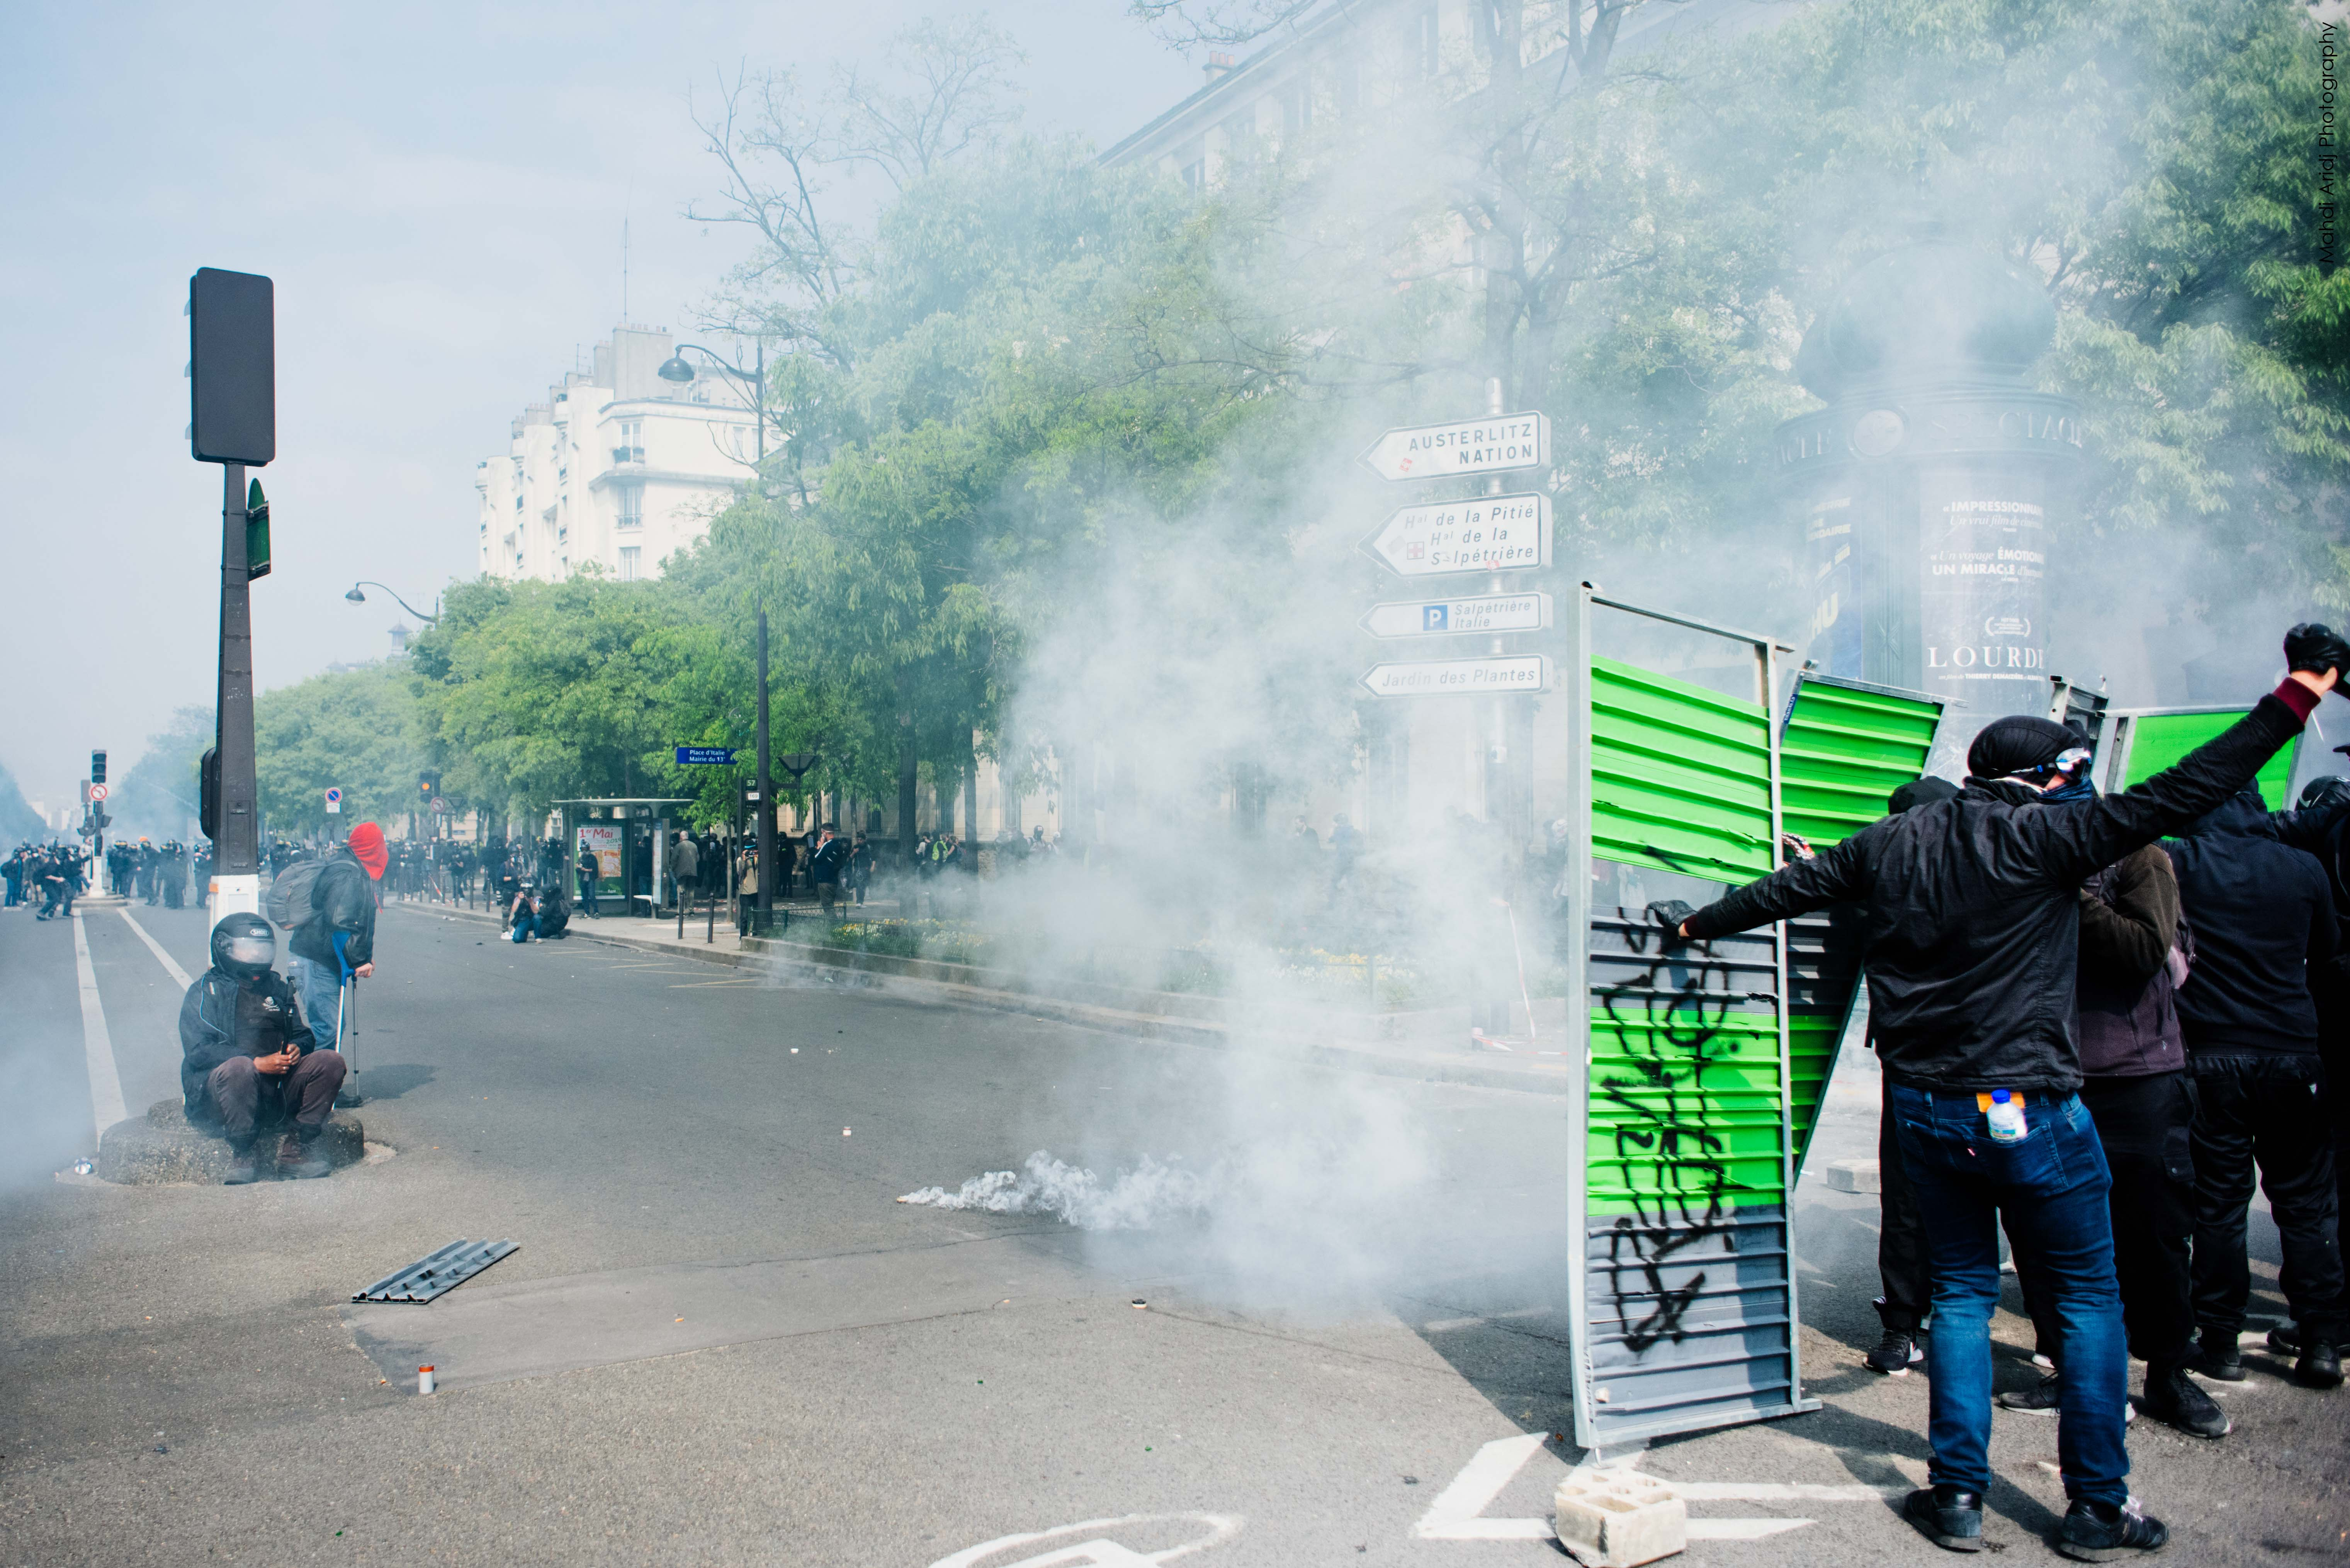 Les photos de la manifestation du 1er Mai 2019 à Paris - Pictures of the Paris May Day protests 2019